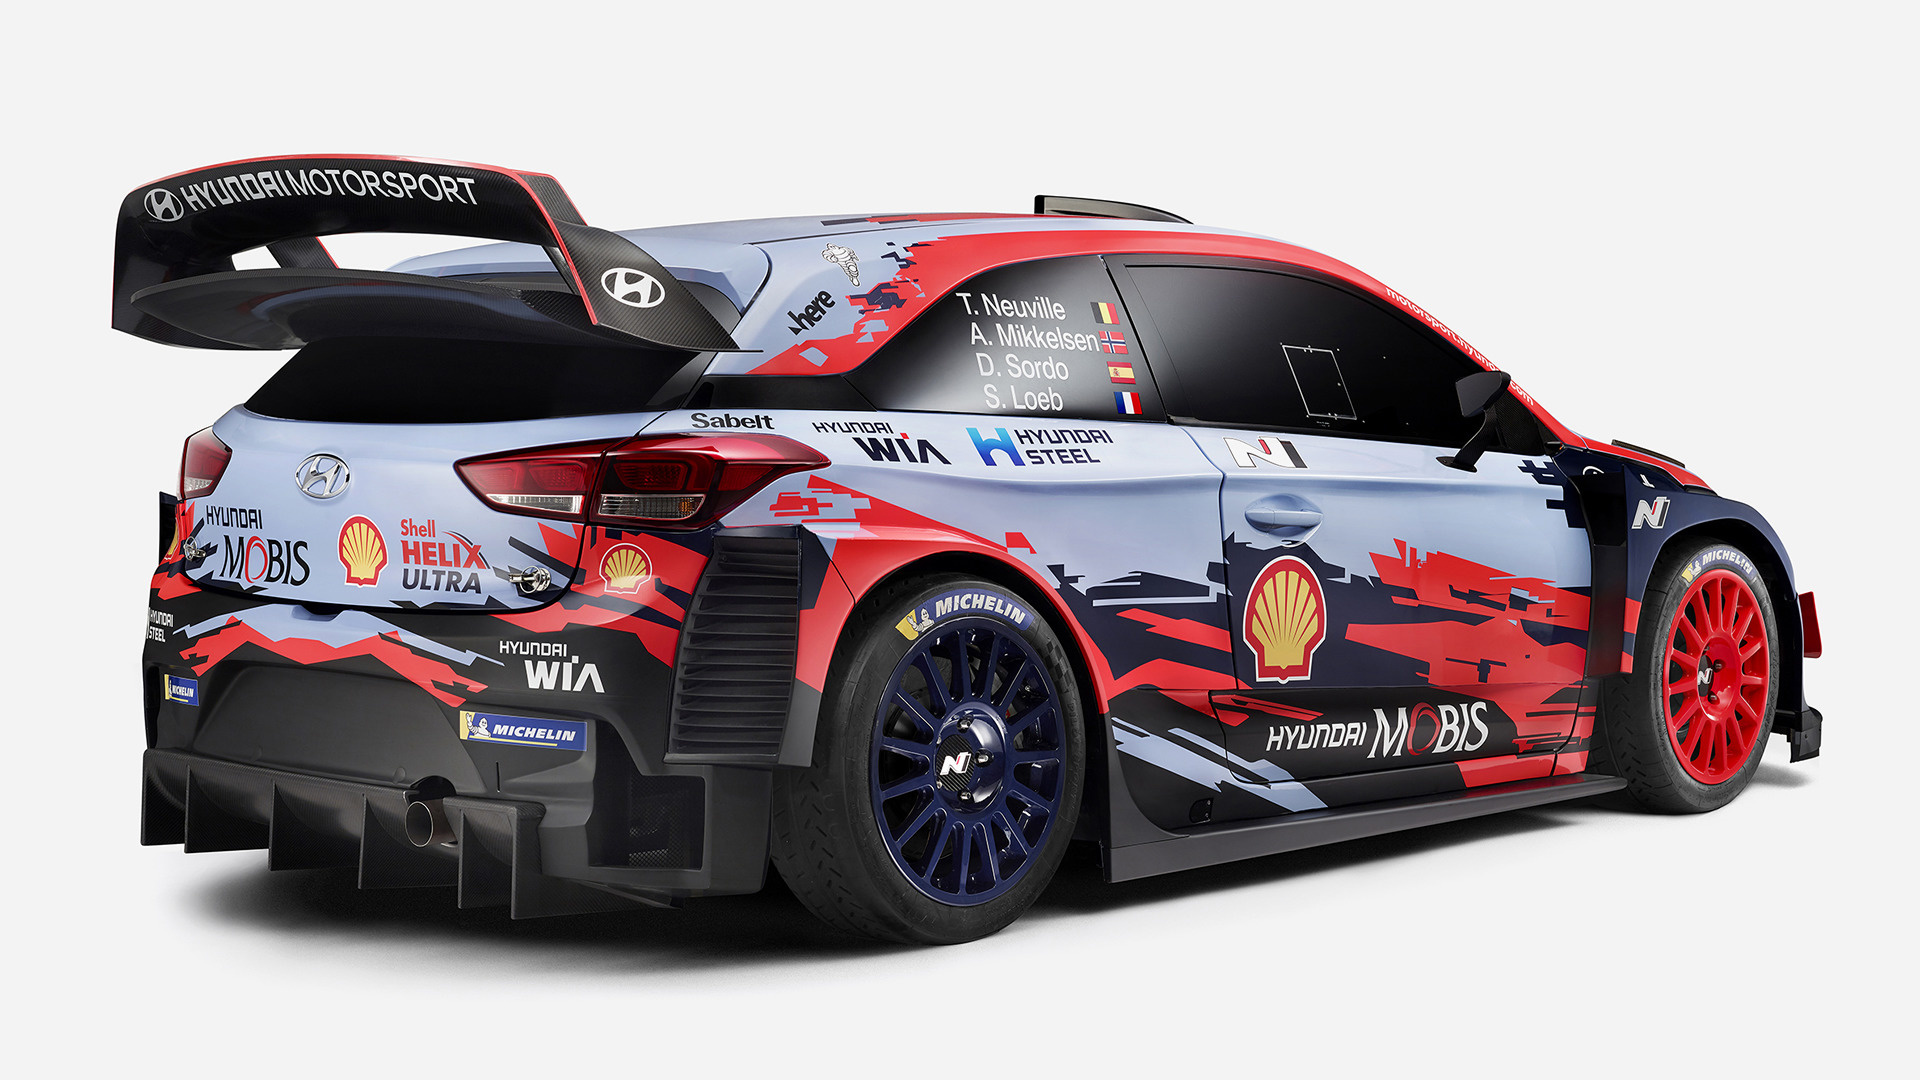 2019 Hyundai i20 Coupe WRC - Wallpapers and HD Images ...